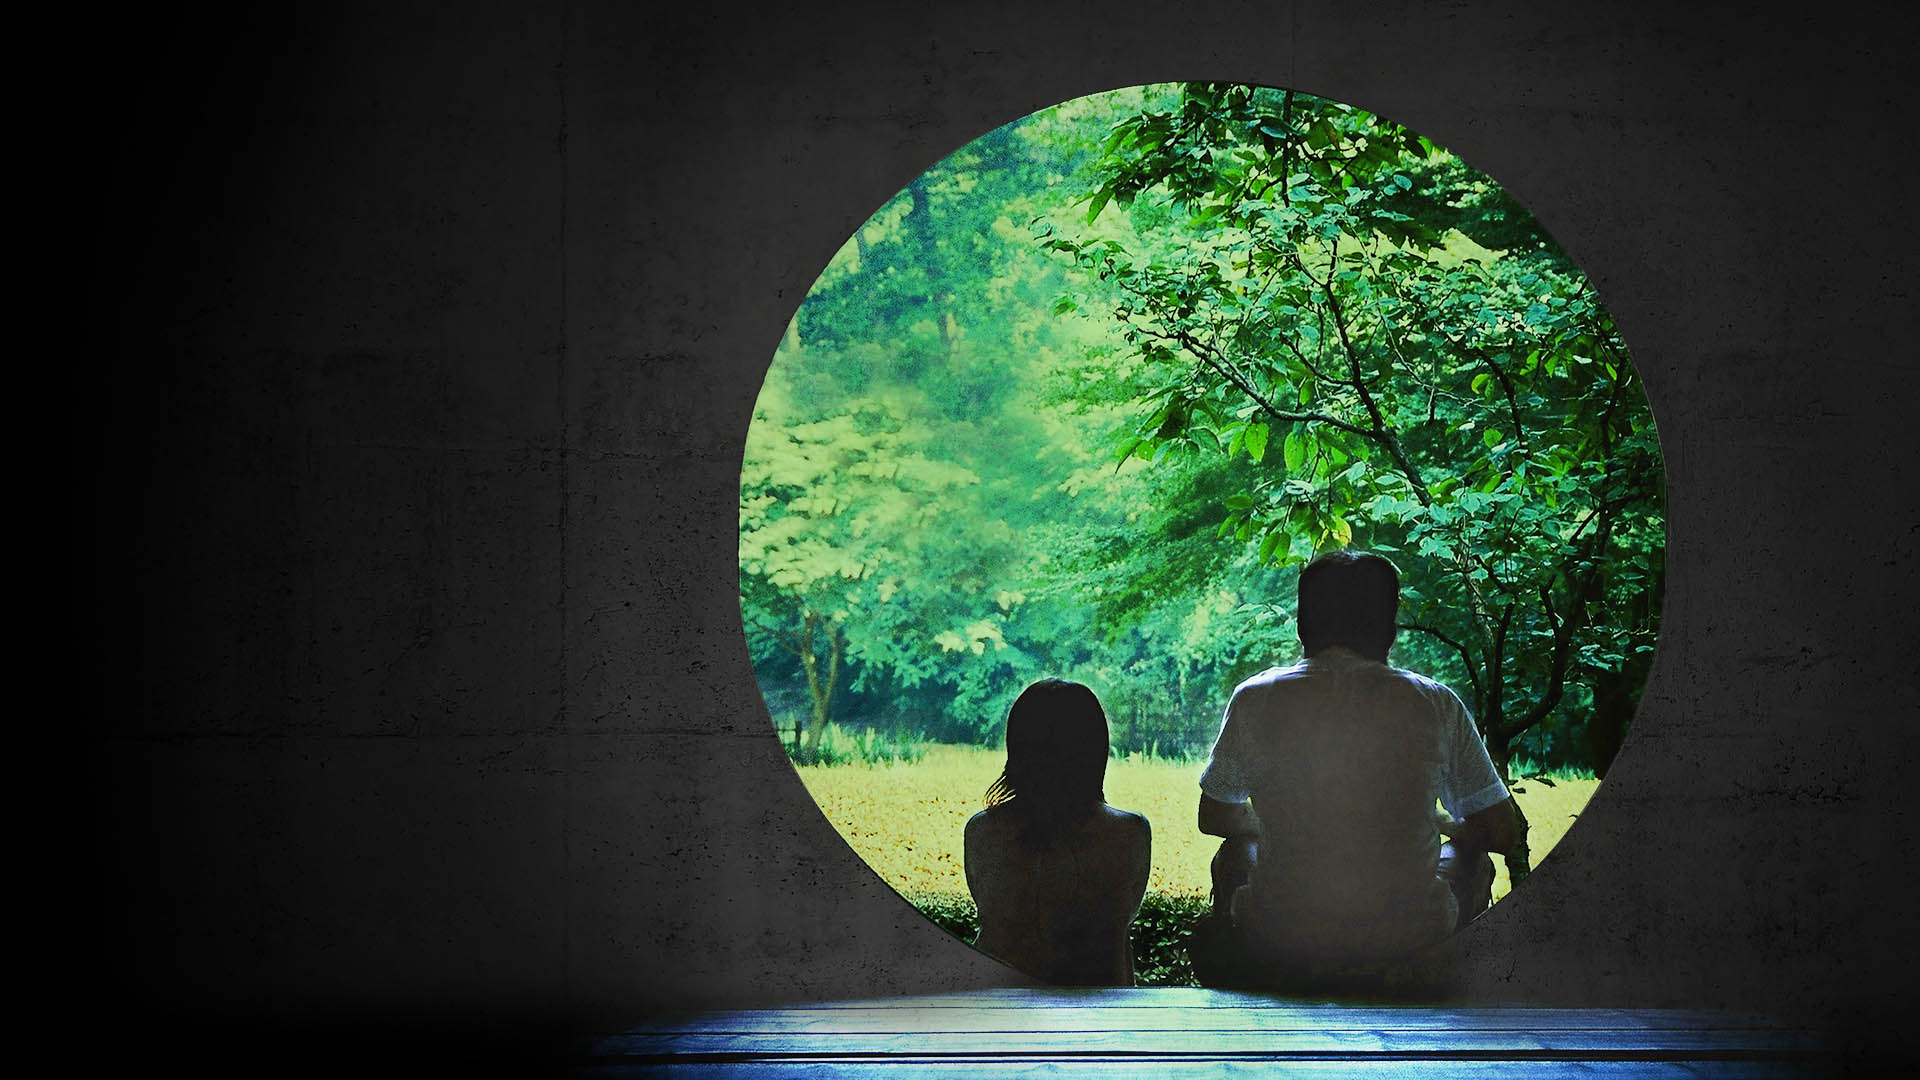 Two silhoetted people sit in front of a circular doorway, looking at green trees